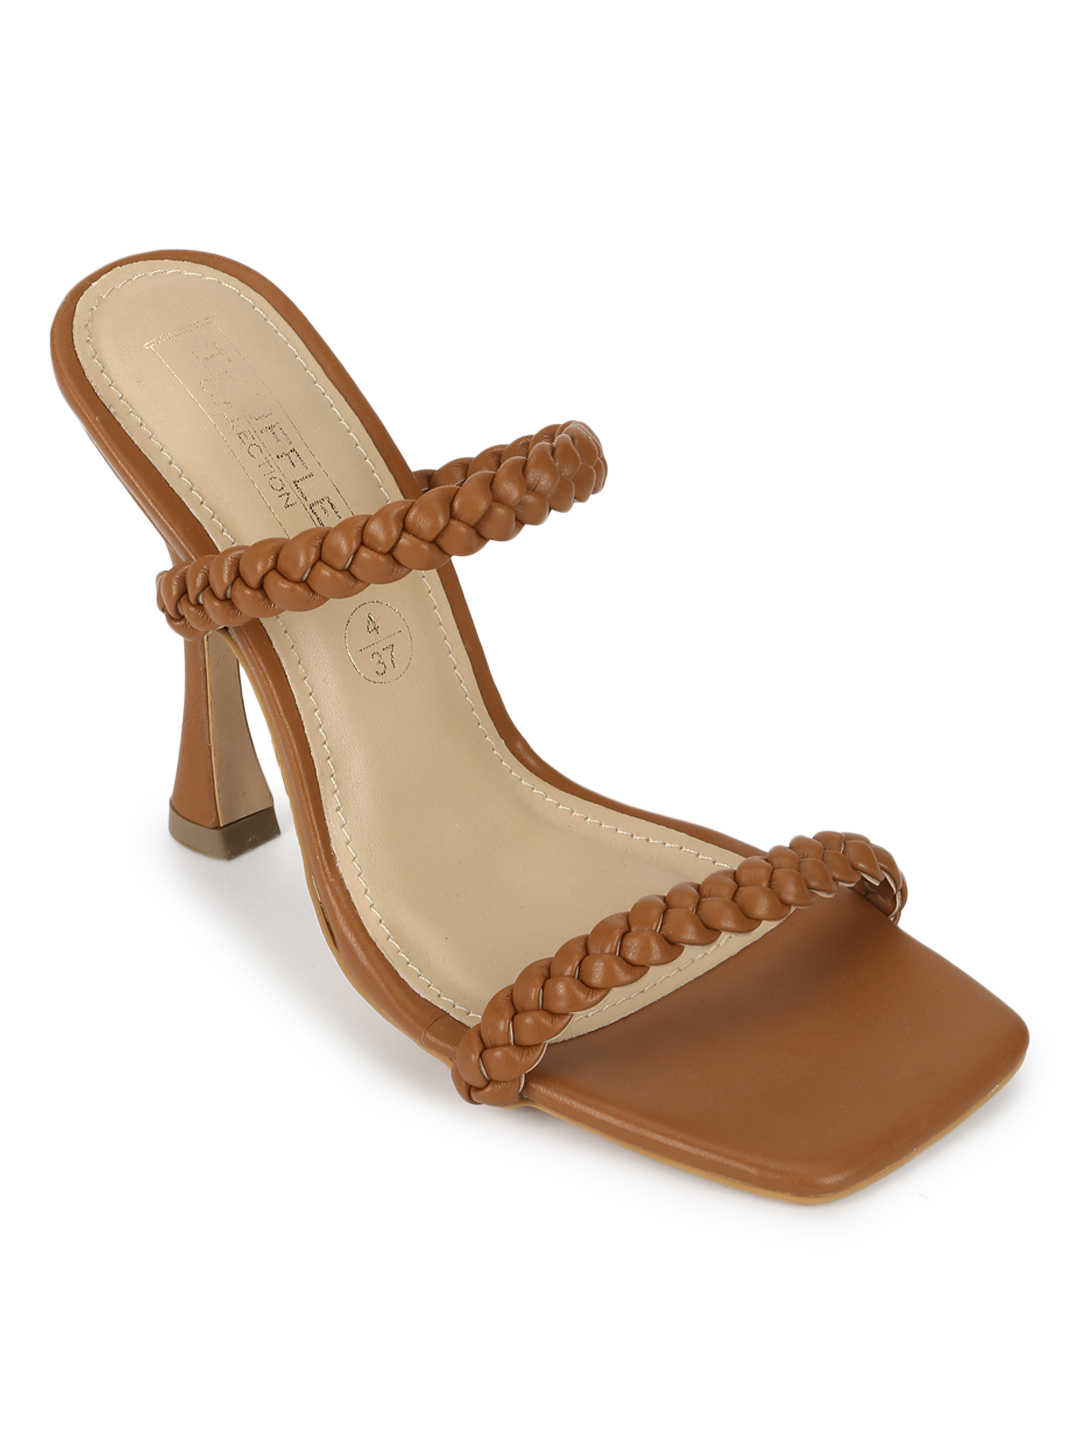 Truffle Collection | Truffle Collection Tan PU Stiletto Heel Braided Mules